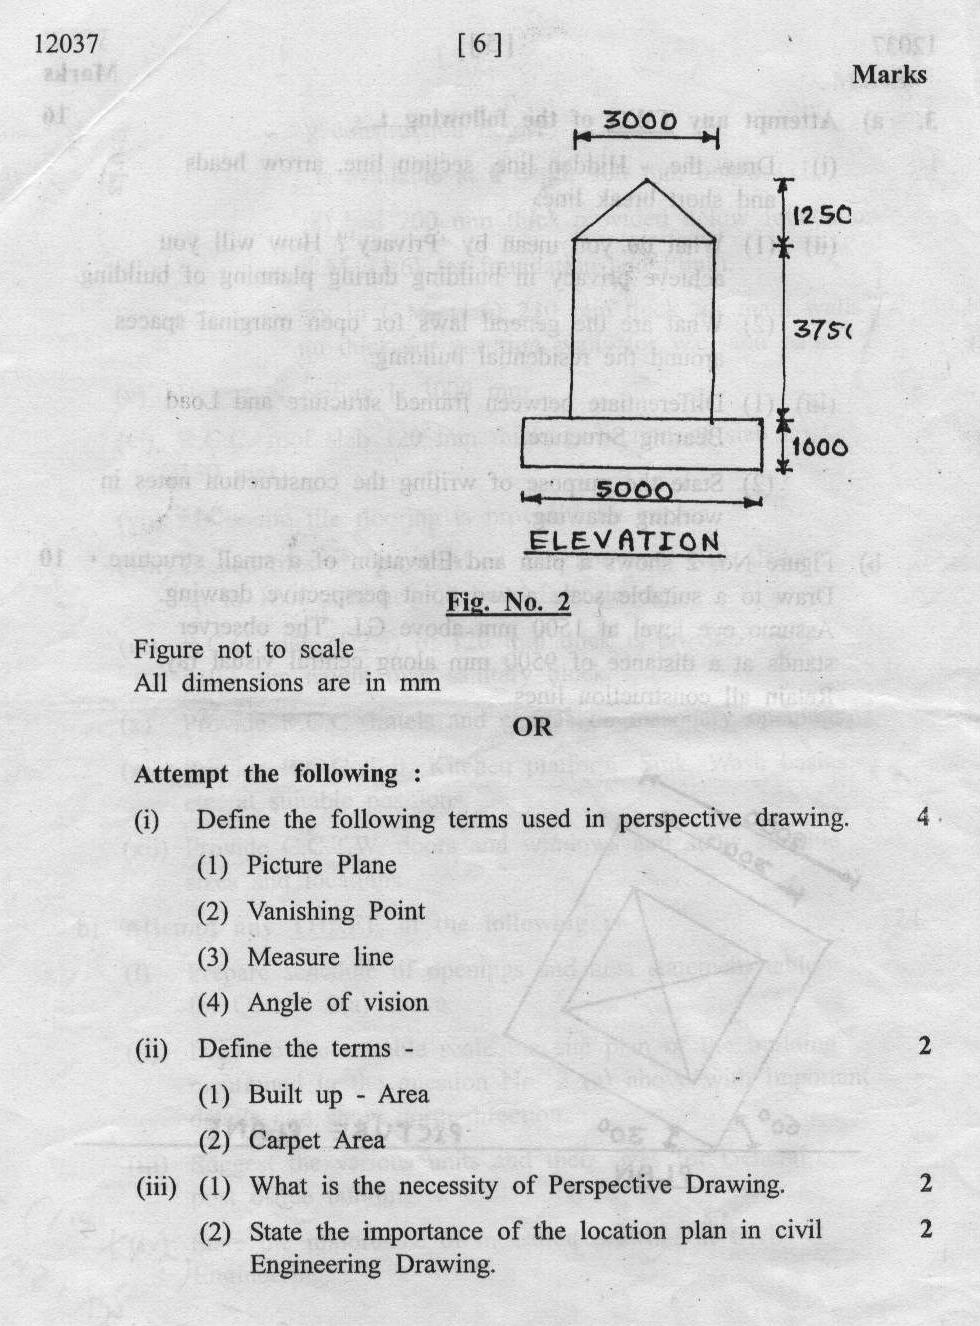 maharashtra state board  technical education msbte question paper  diploma